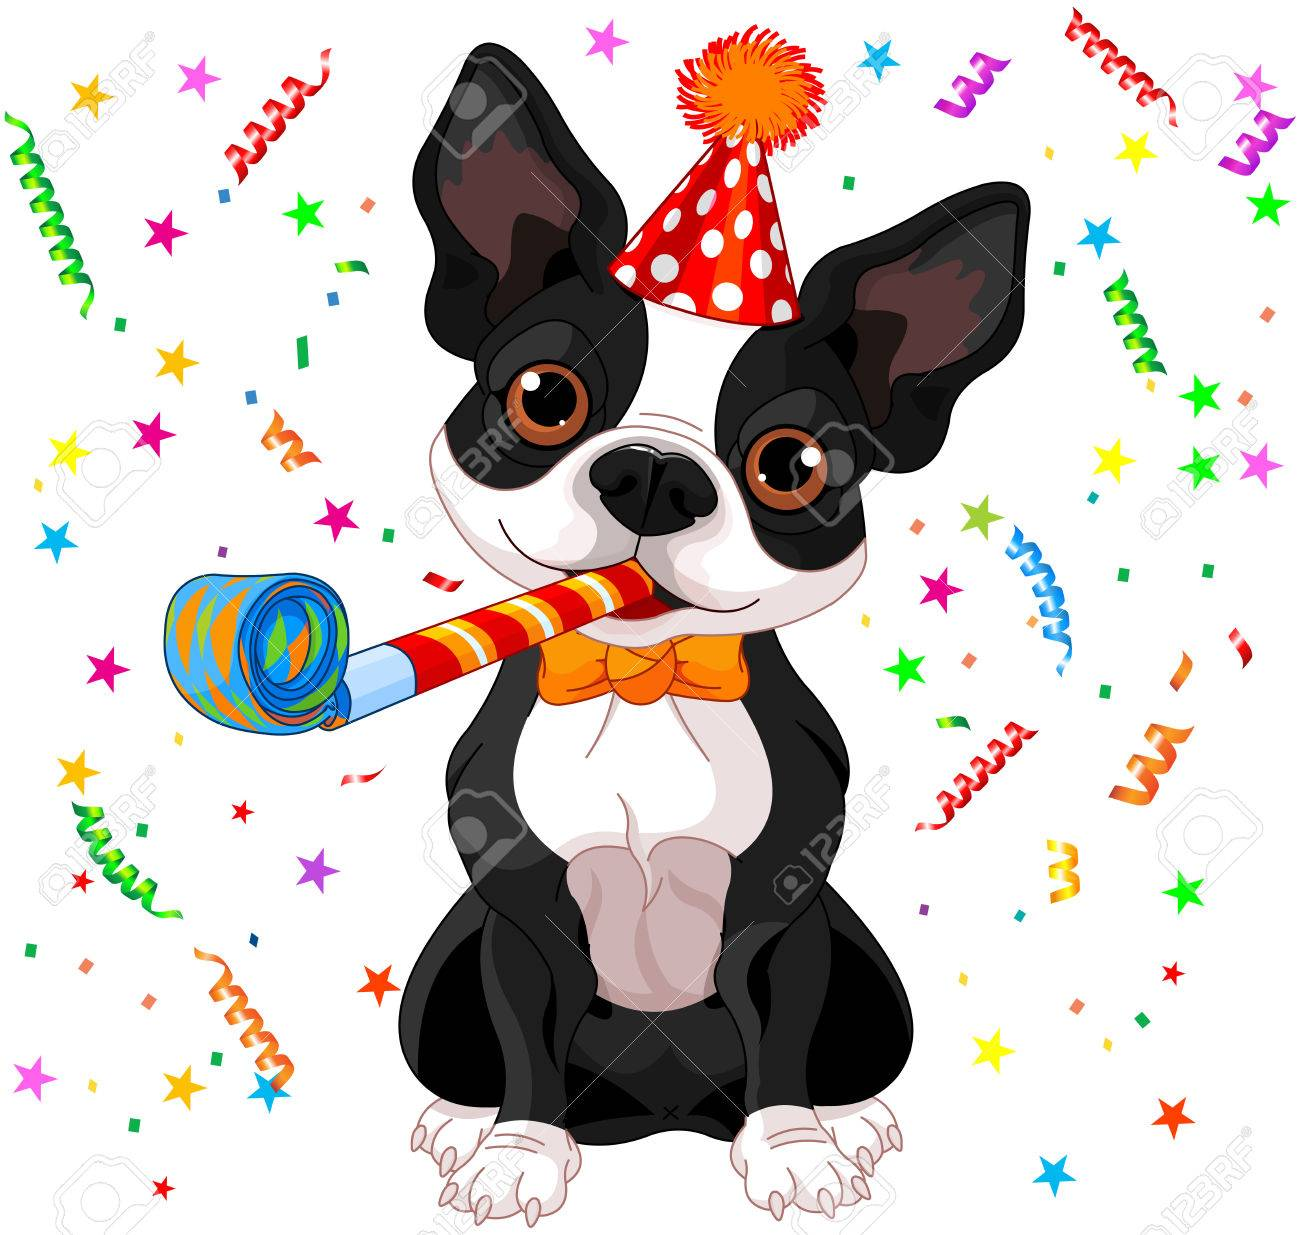 Balades canines en Nord (59)/Pas de Calais (62) - Boulogne-sur-Mer, Calais et Lille - Page 2 35588778-illustration-of-cute-boston-terrier-celebrating